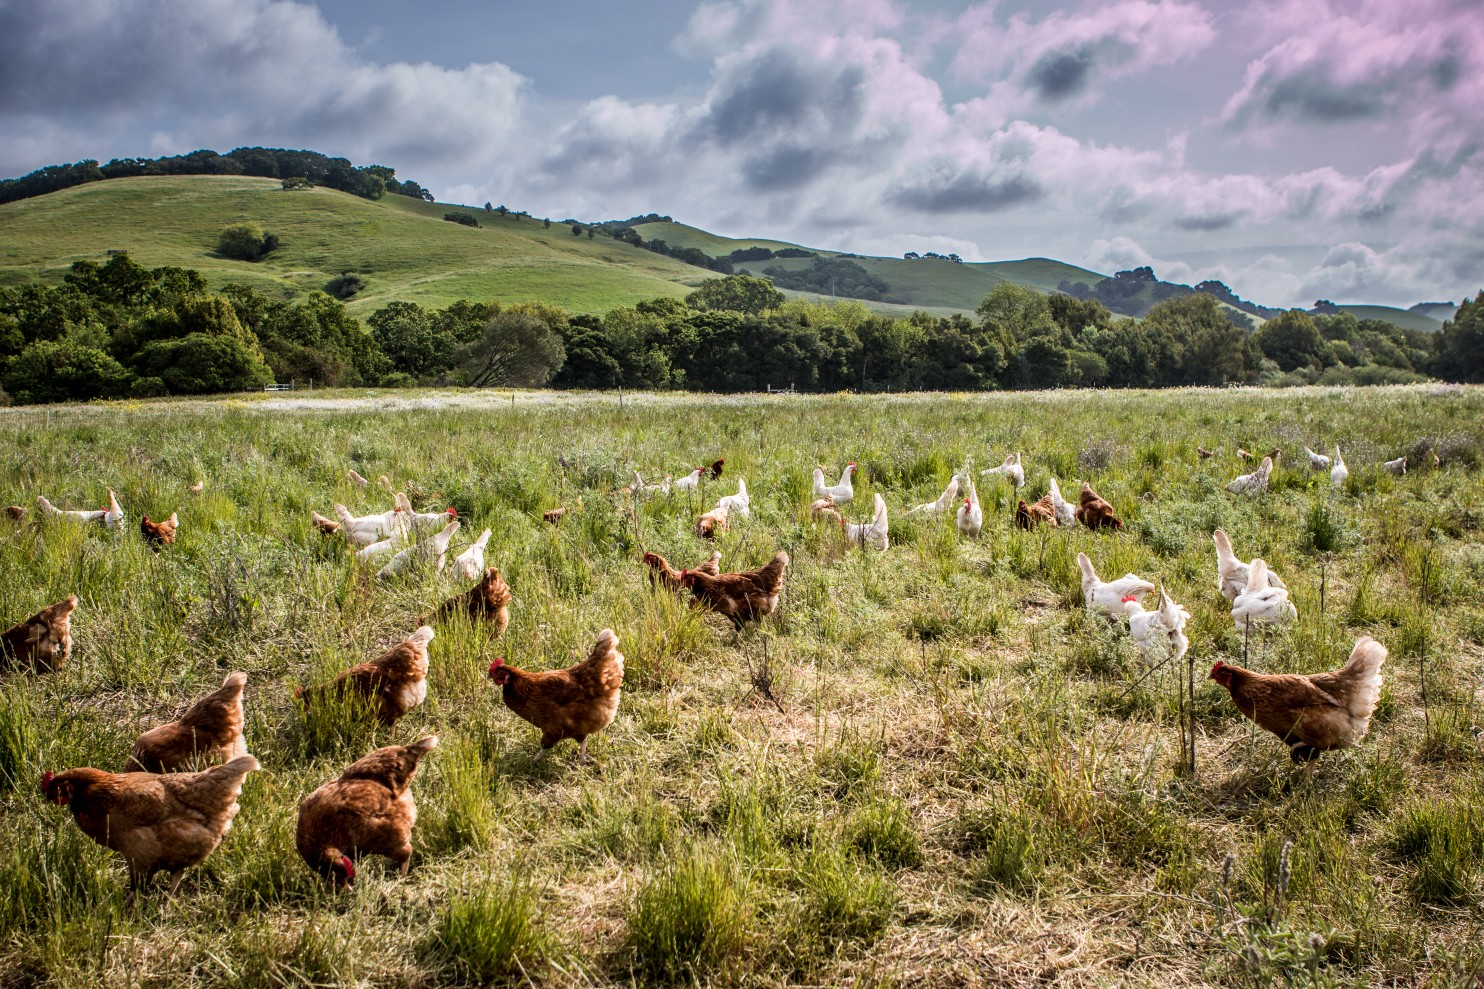 Chickens have freedom to roam at RedHill Farms in West Marin County, CA. Their eggs are sold to Austin-based Vital Farms, which produces 1.5 million pasture-raised organic eggs every week. (Credit: Vital Farms)